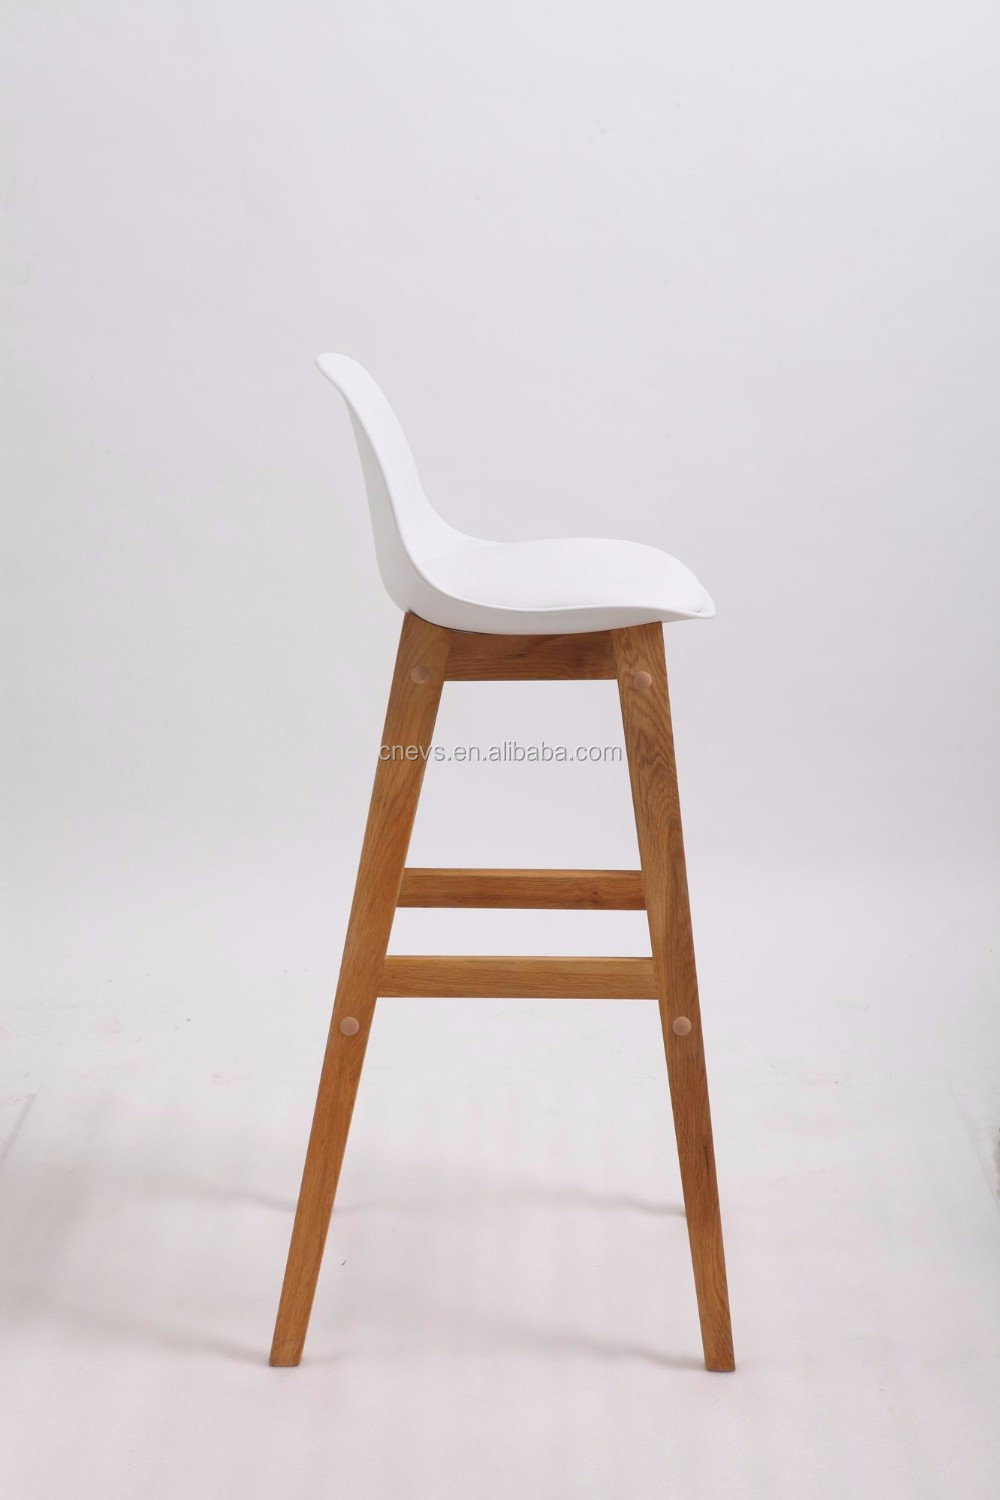 Hot Selling Wooden Bar Chair Wooden Bar Furnitue